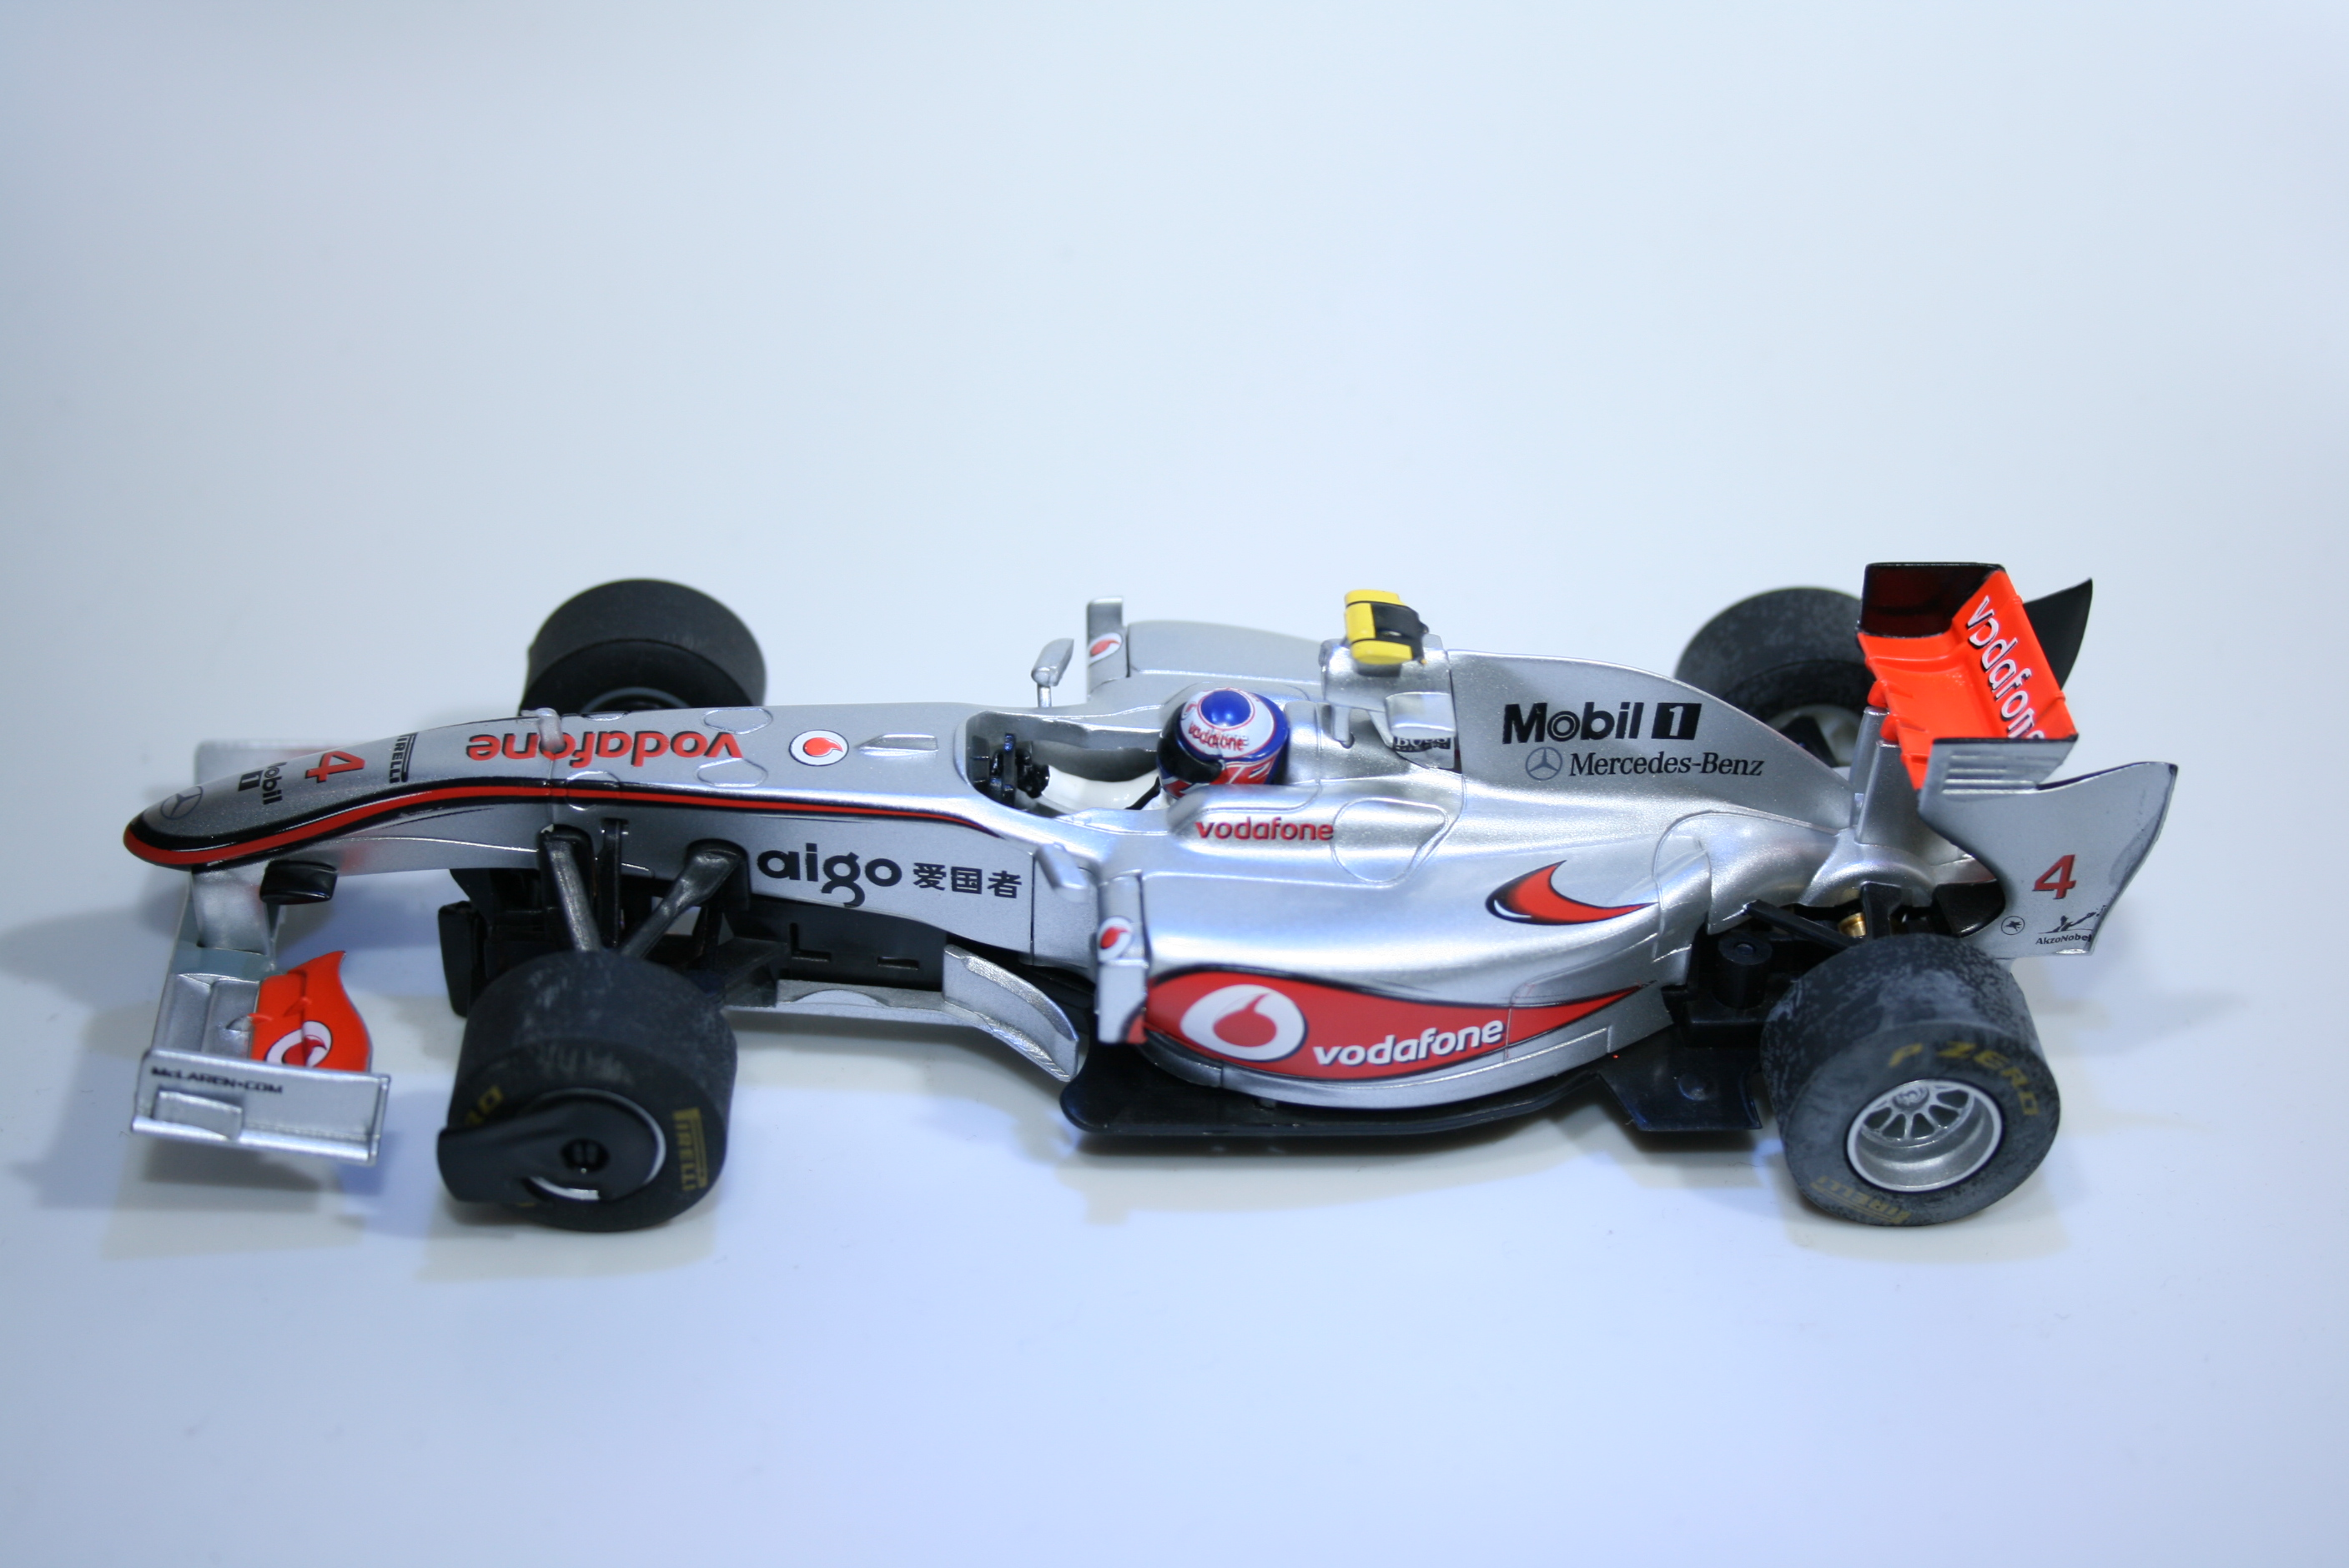 704 Mclaren MP4/26 2011 J Button SCX A10080 2012 Boxed